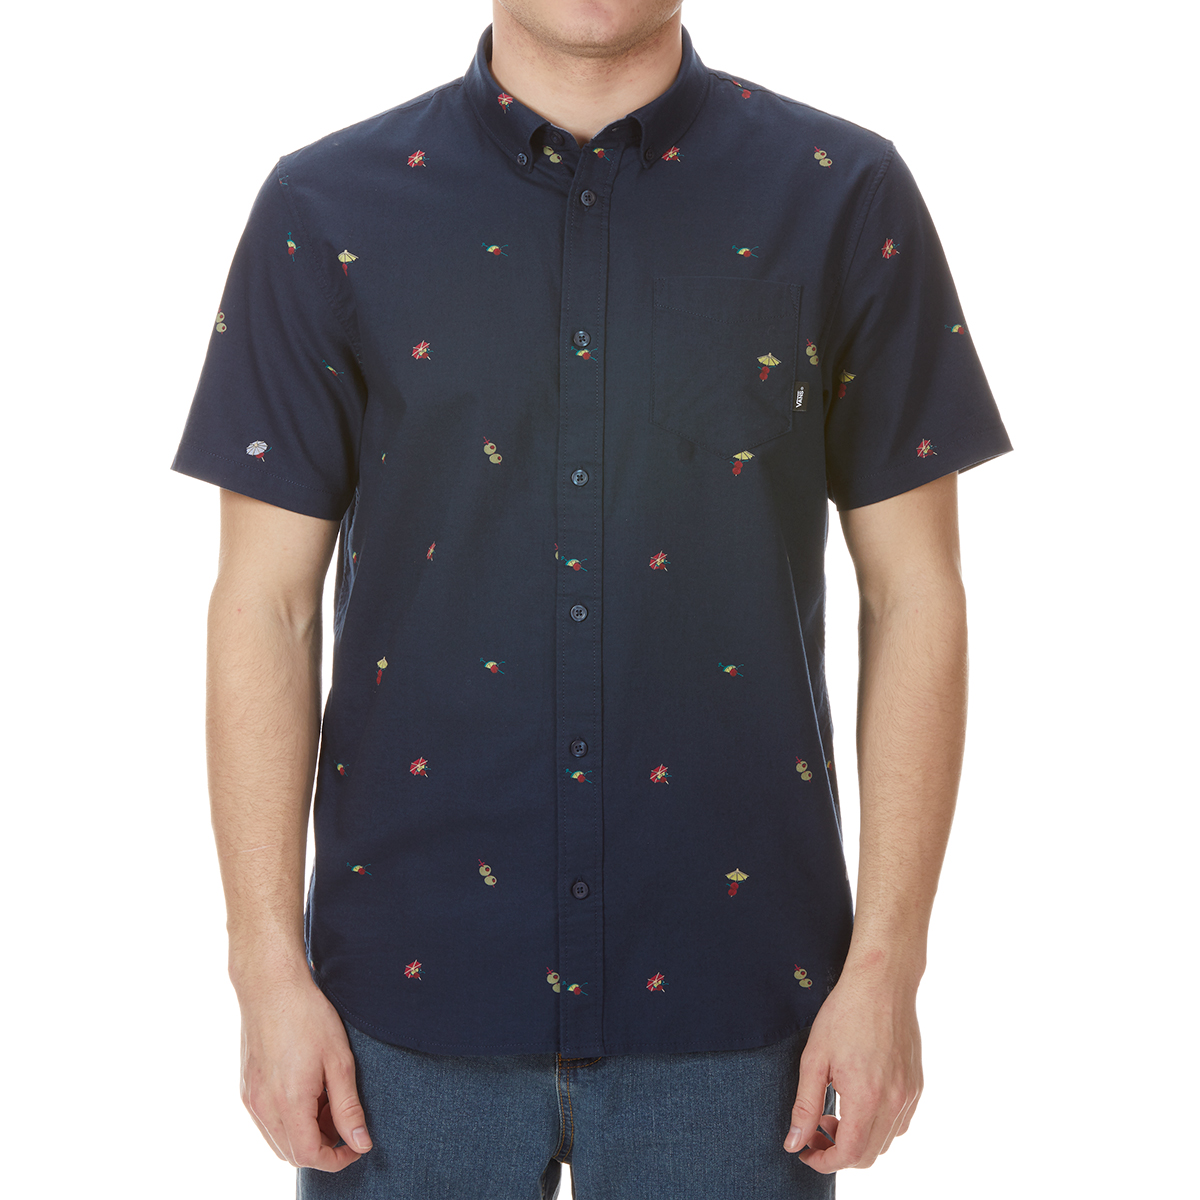 Vans Guys' Houser Woven Short-Sleeve Shirt - Blue, L